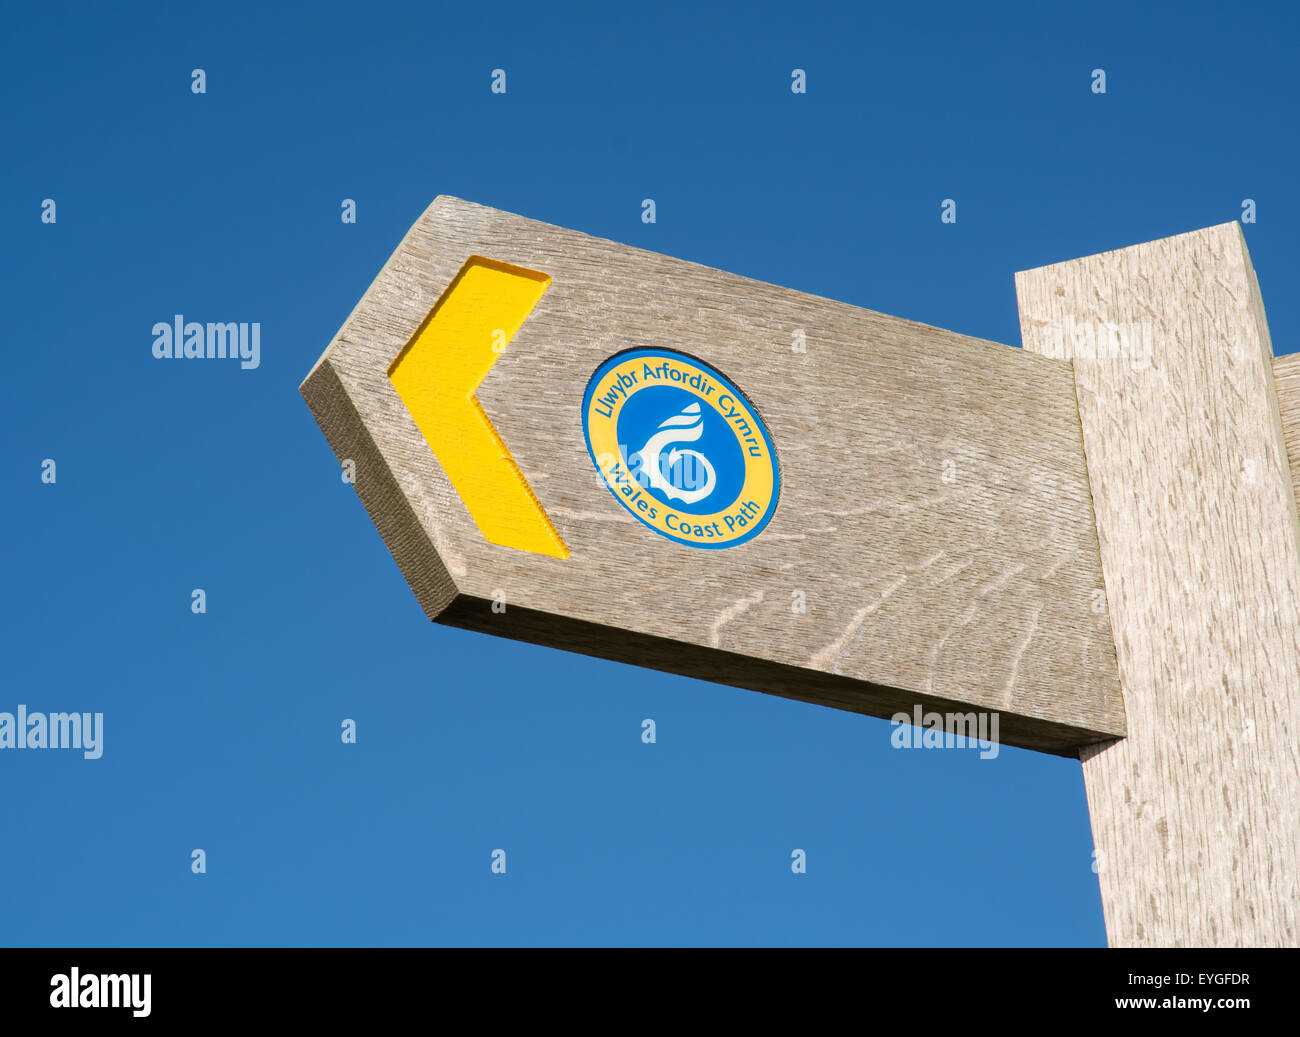 footpath sign for Wales Coast Path - Stock Image